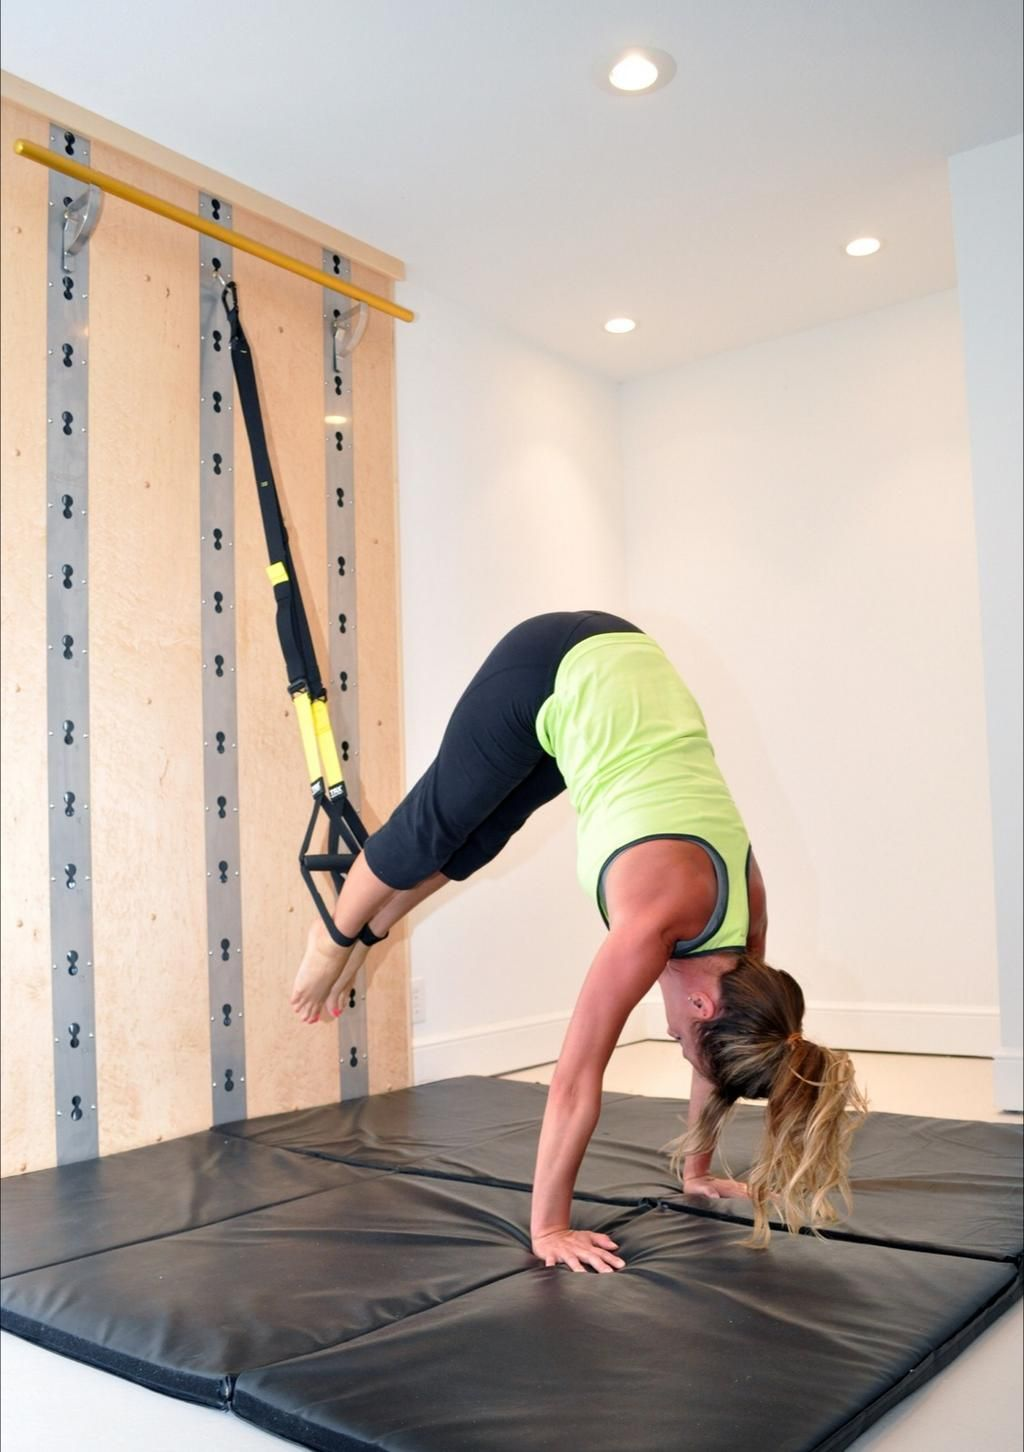 TRX + Isawall = AMAZING home workout! #isawall www.isawall.com